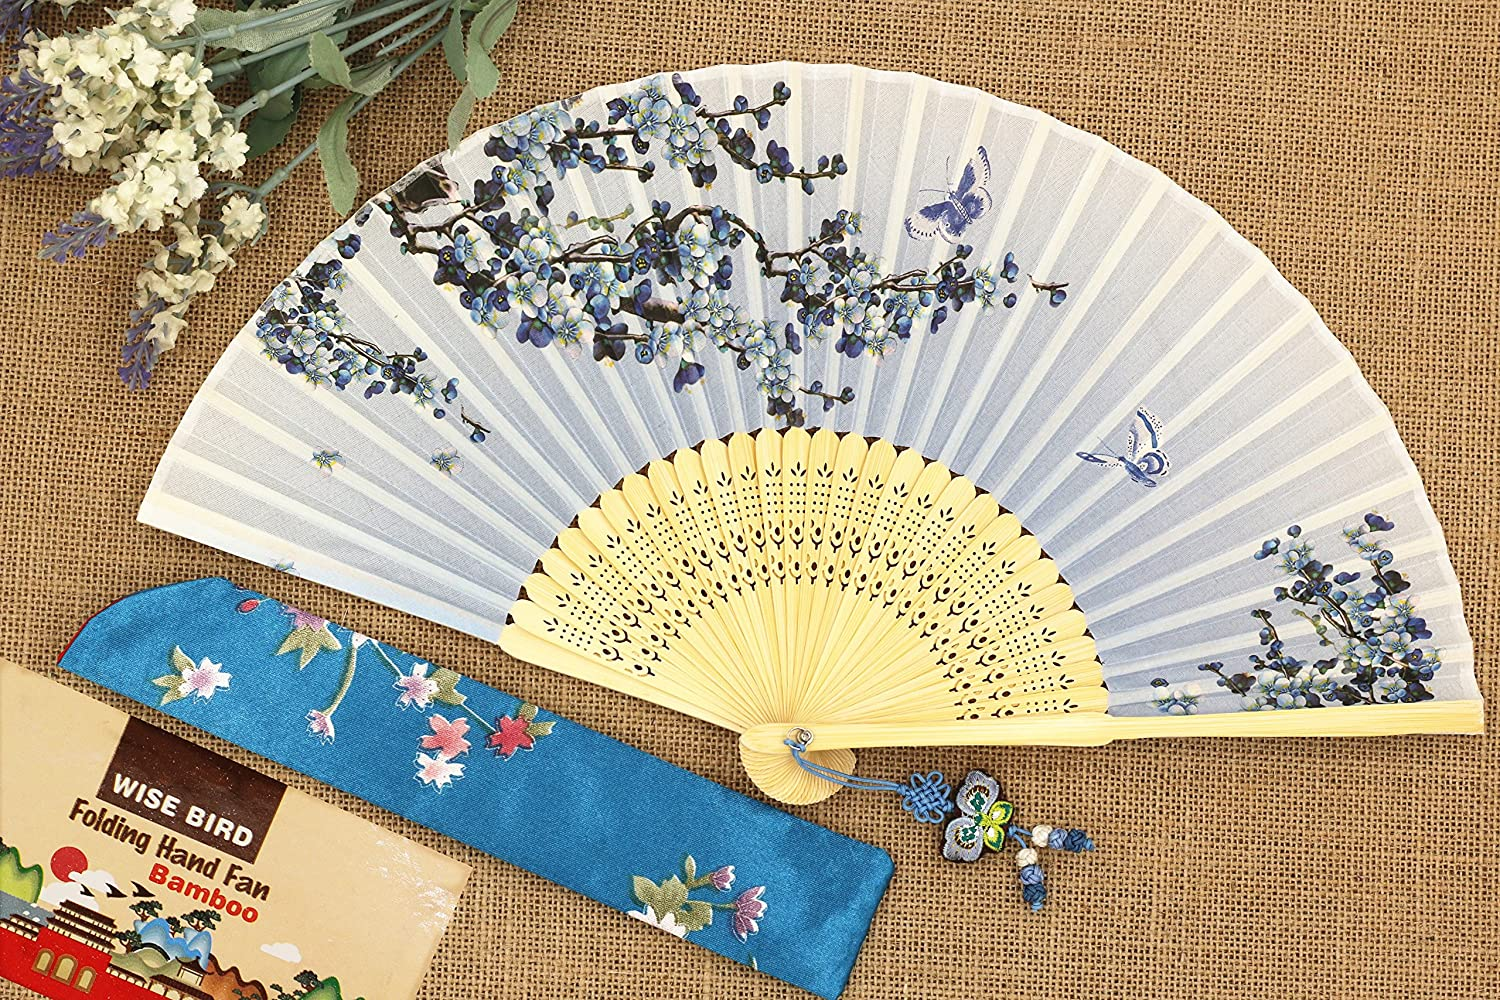 Amazon.com: Wise Bird Chinese Fan Japanese Folding Hand Fan ...